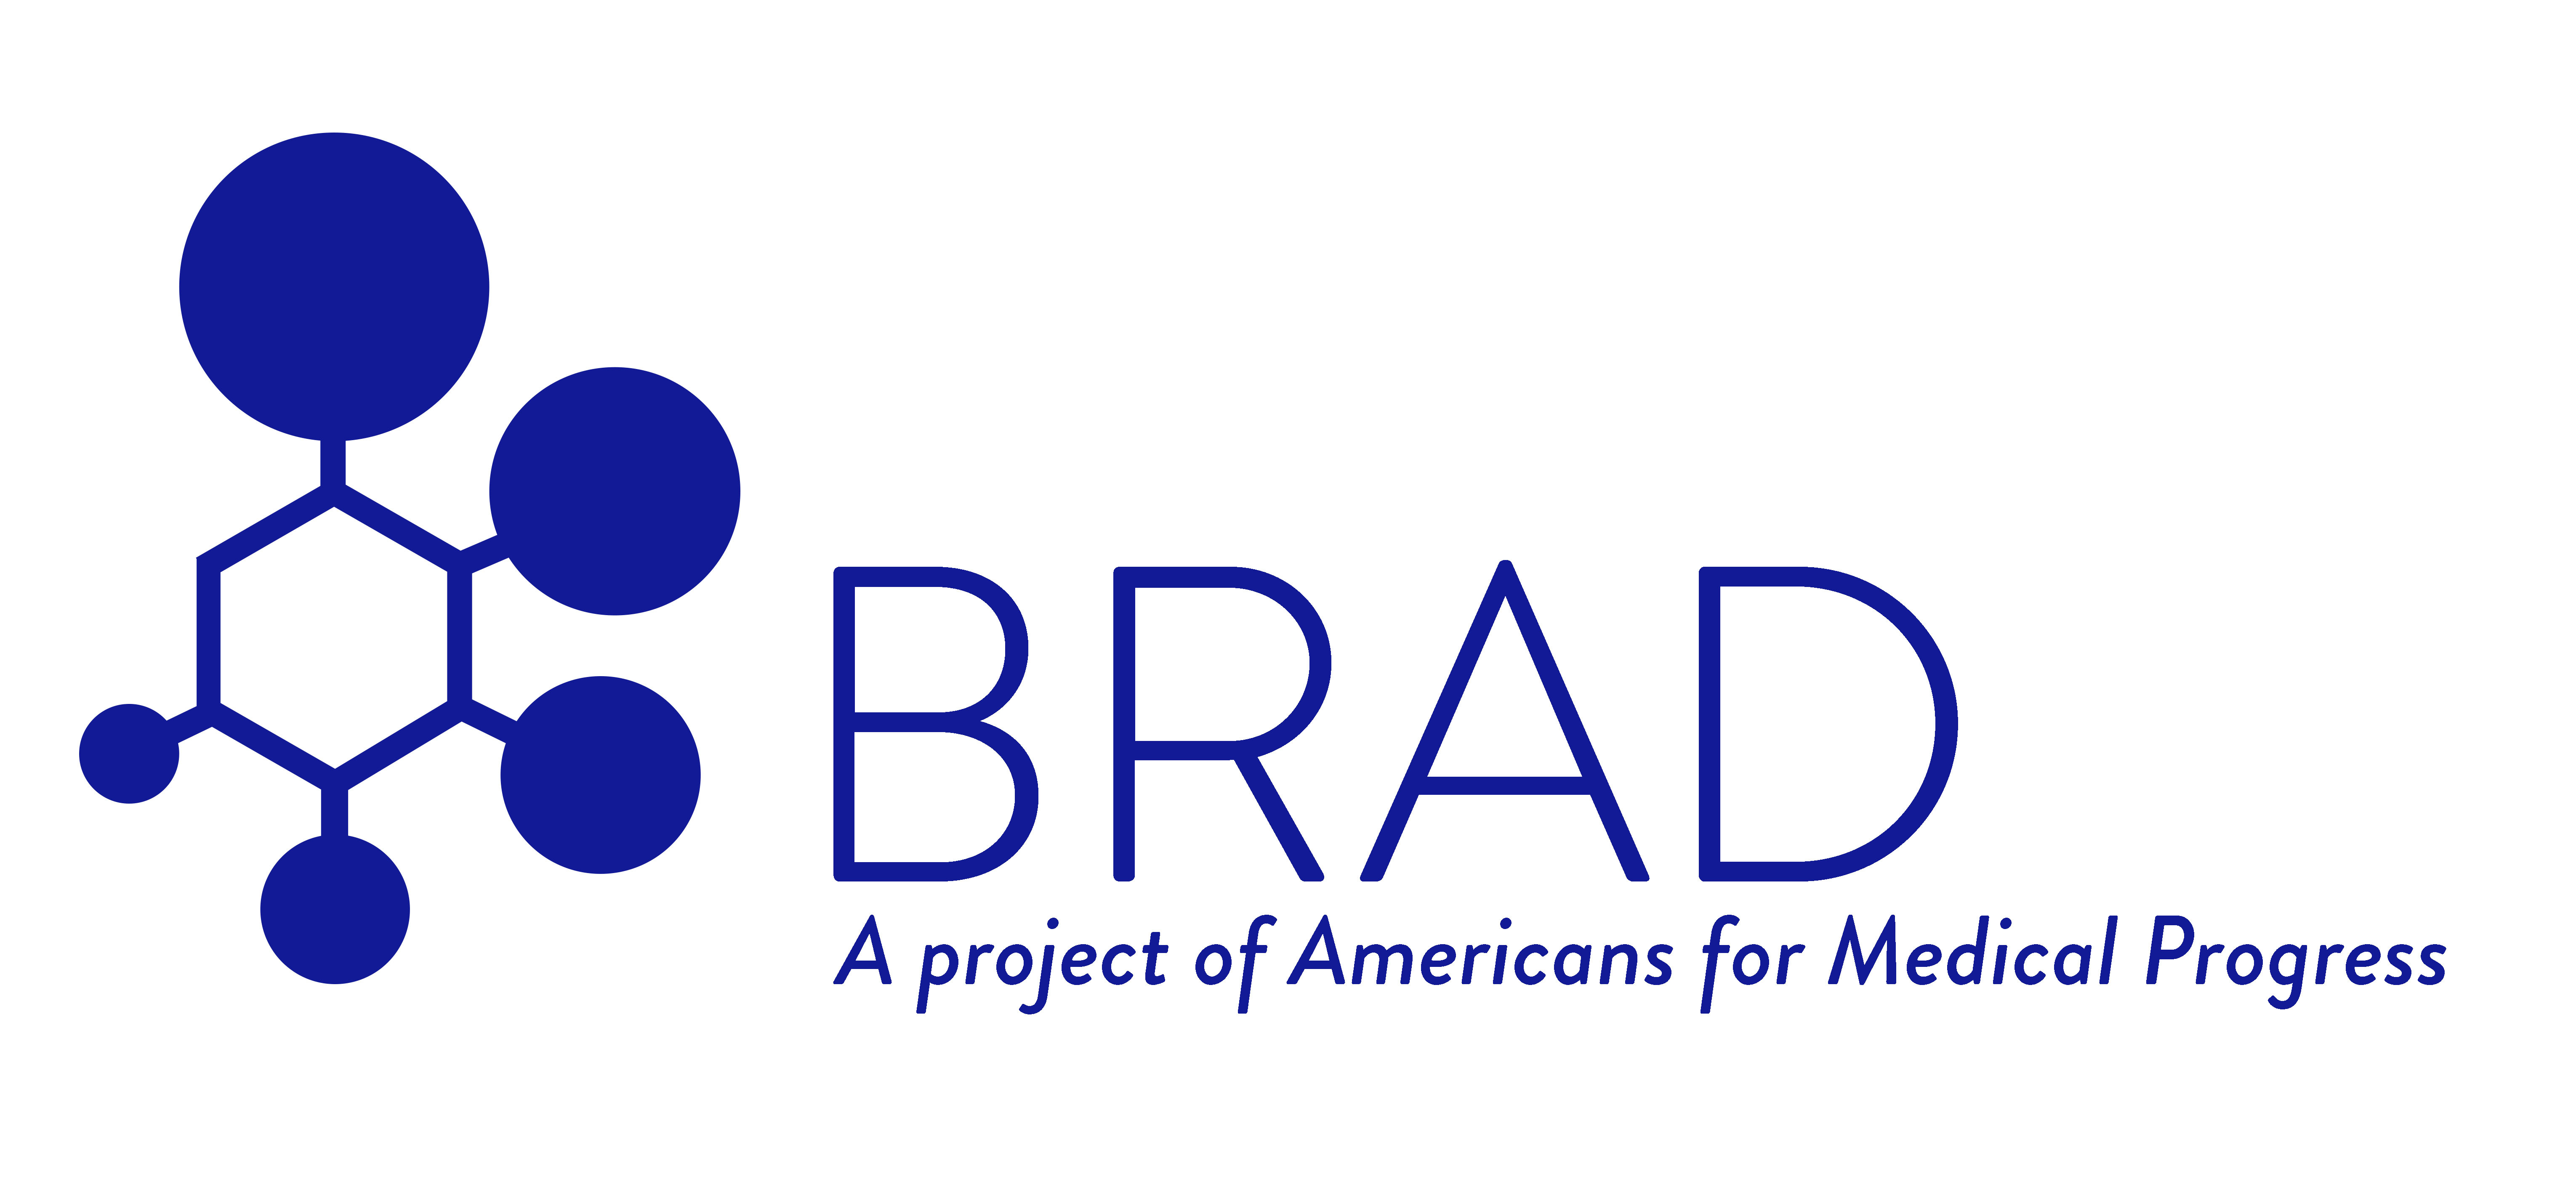 BRAD. A project of Americans for Medical Progress.